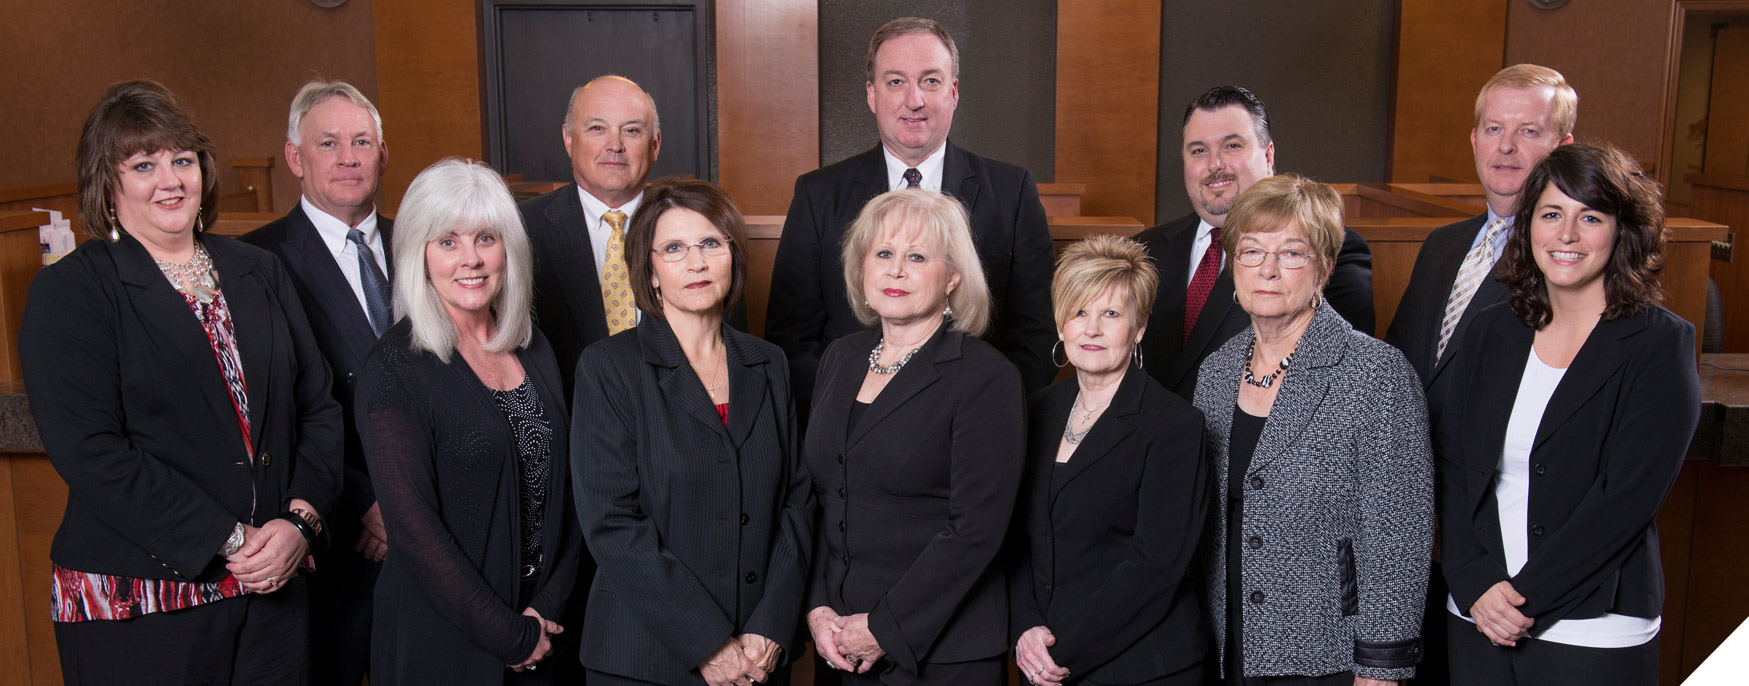 Meet Our Team | The Citizens Bank